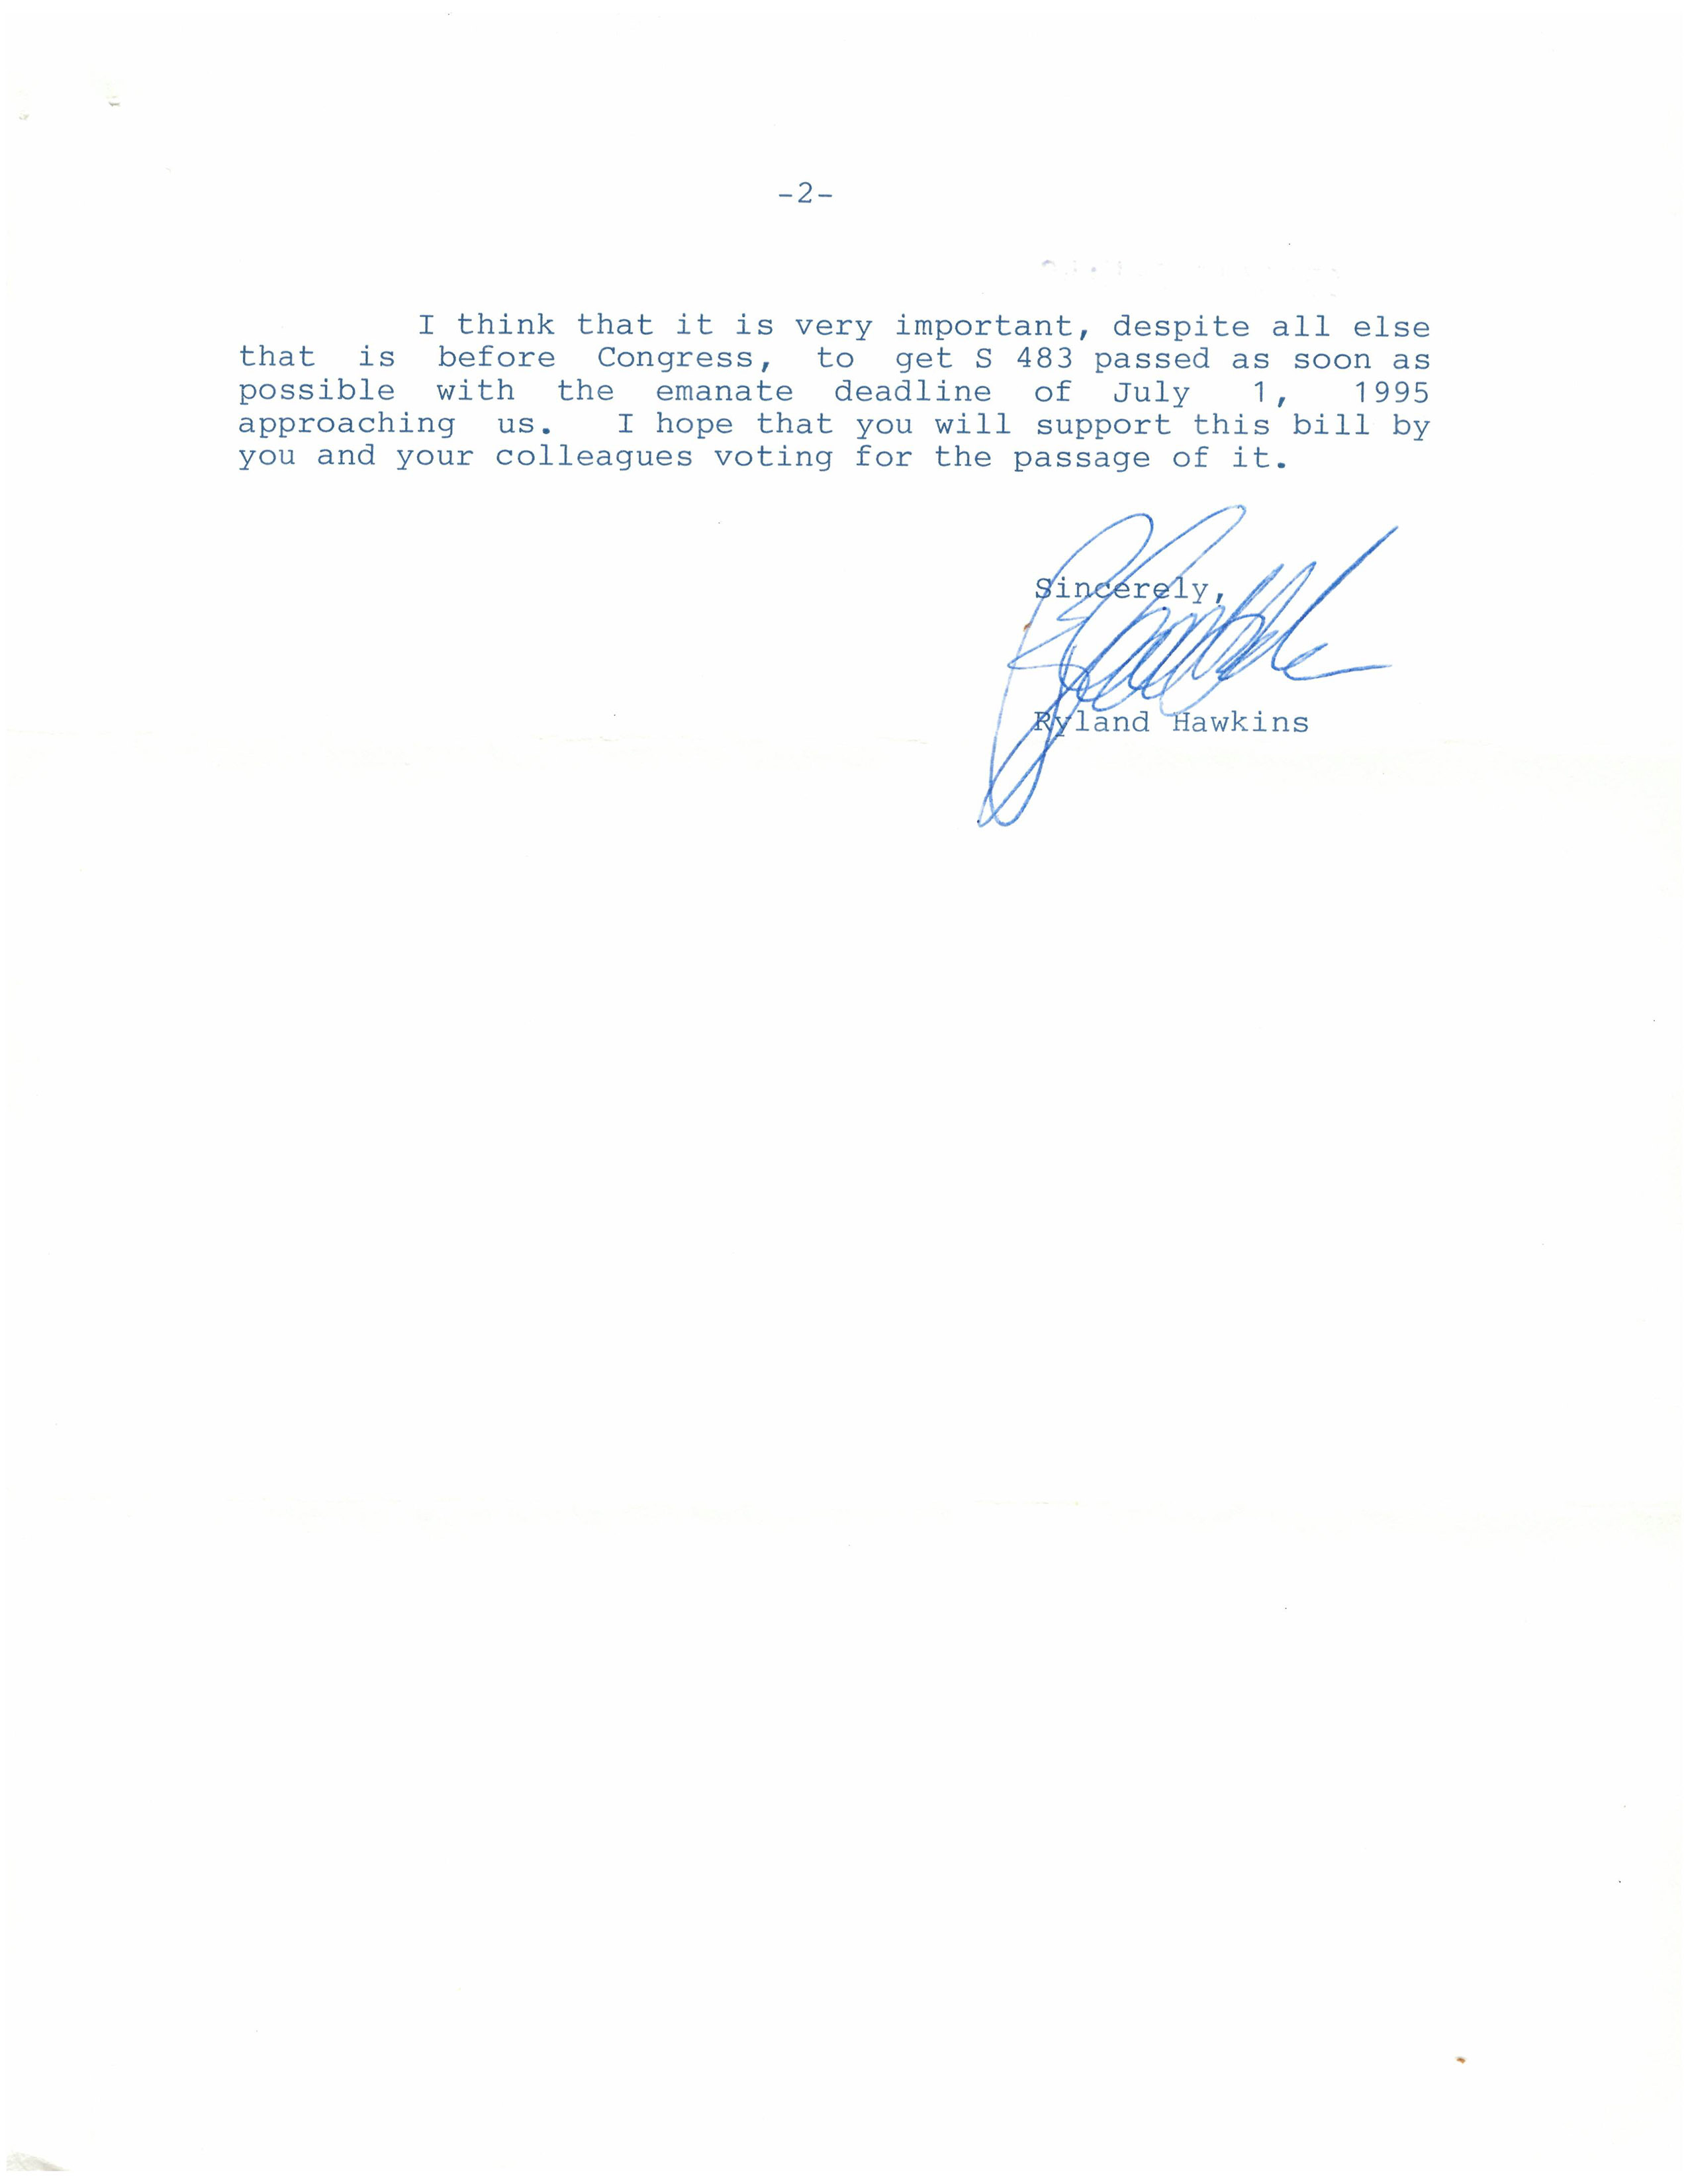 Letter from the estate of L Ron Hubbard to Senator Orrin G. Hatch regarding the Copyright Term Extension Act, May 11, 1995, page 2. (Records of the U.S. Senate, National Archives)